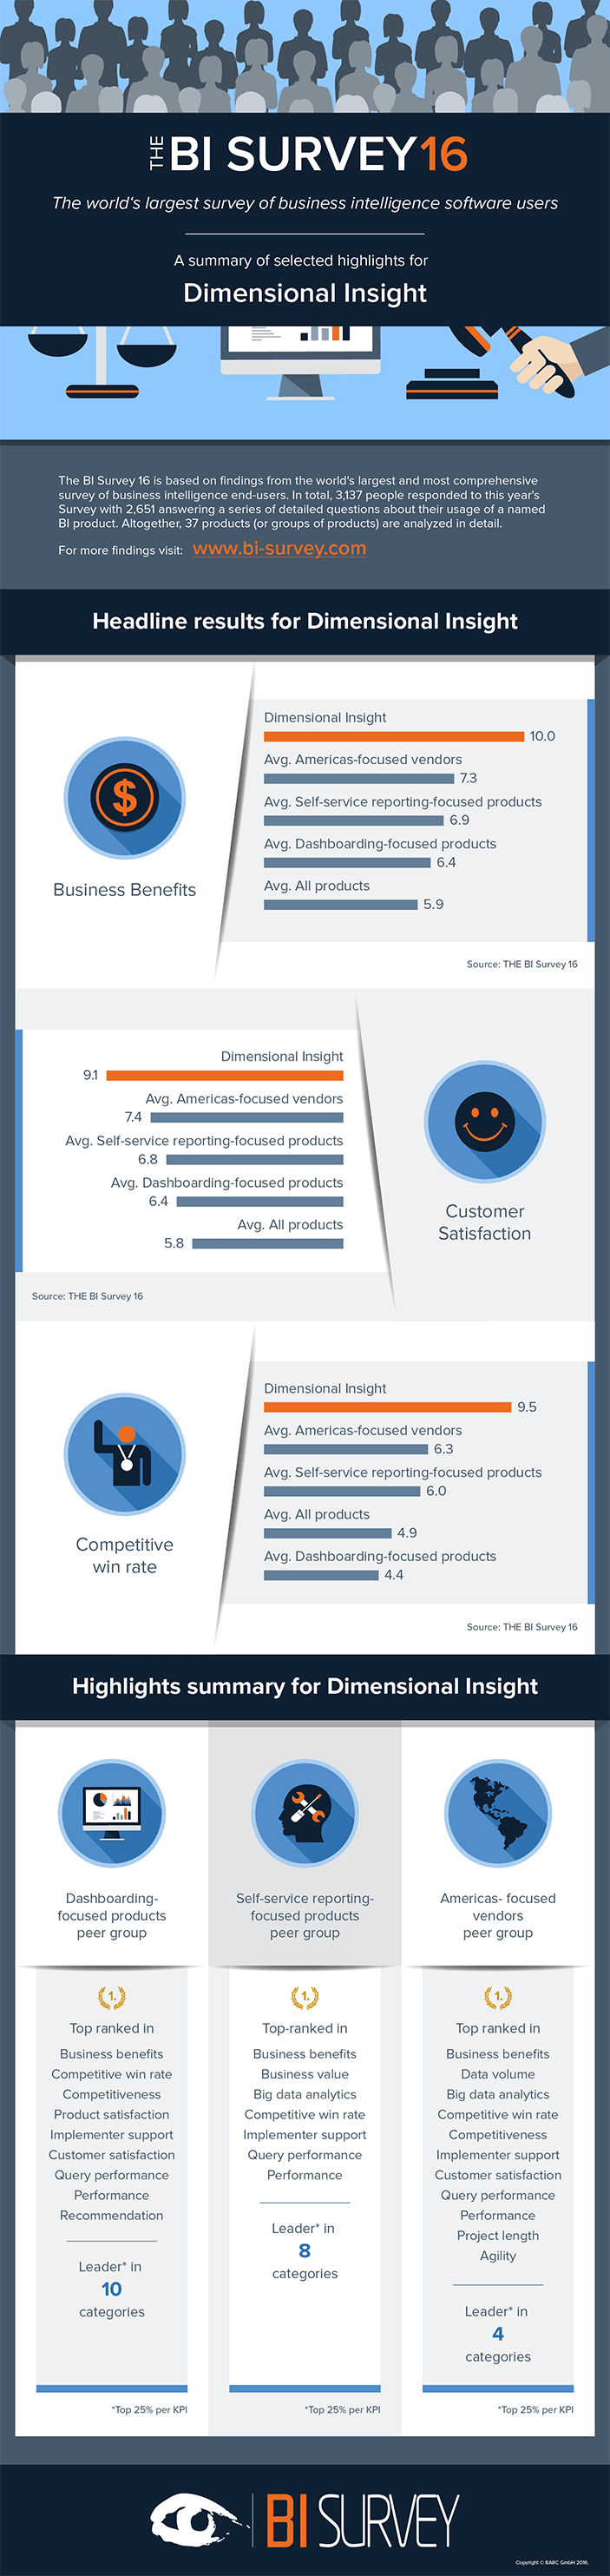 Infographic about Dimensional Insight's ranking in BARC's BI Survey 16